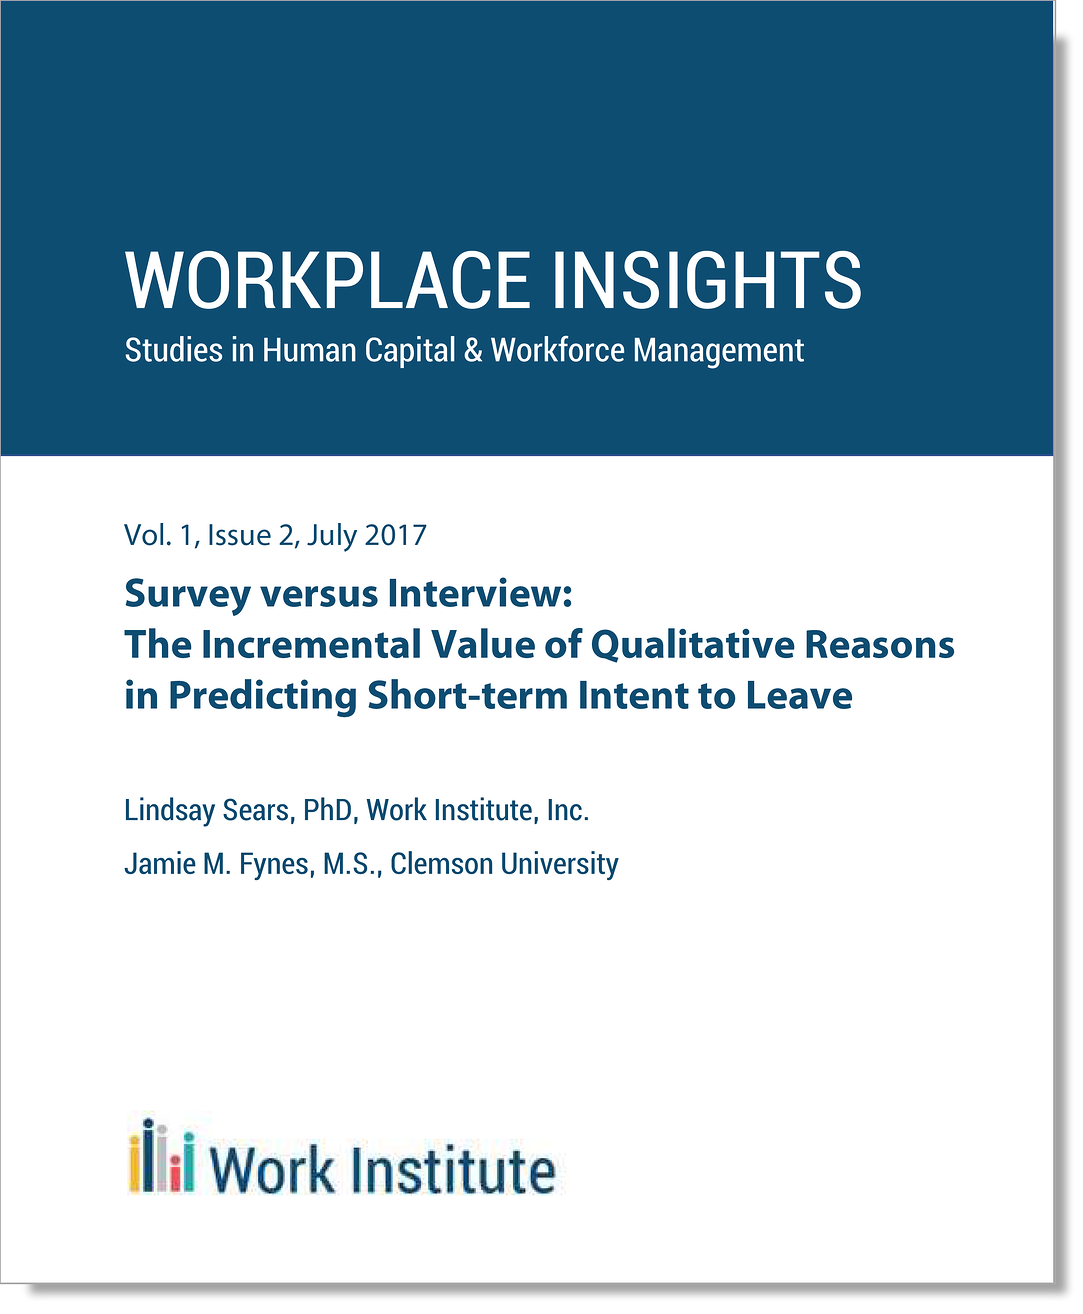 Workplace Insights-Vol01-Issue02-Survey vs Interview (Fynes&Sears)-2017-FINAL 7.21-1.png